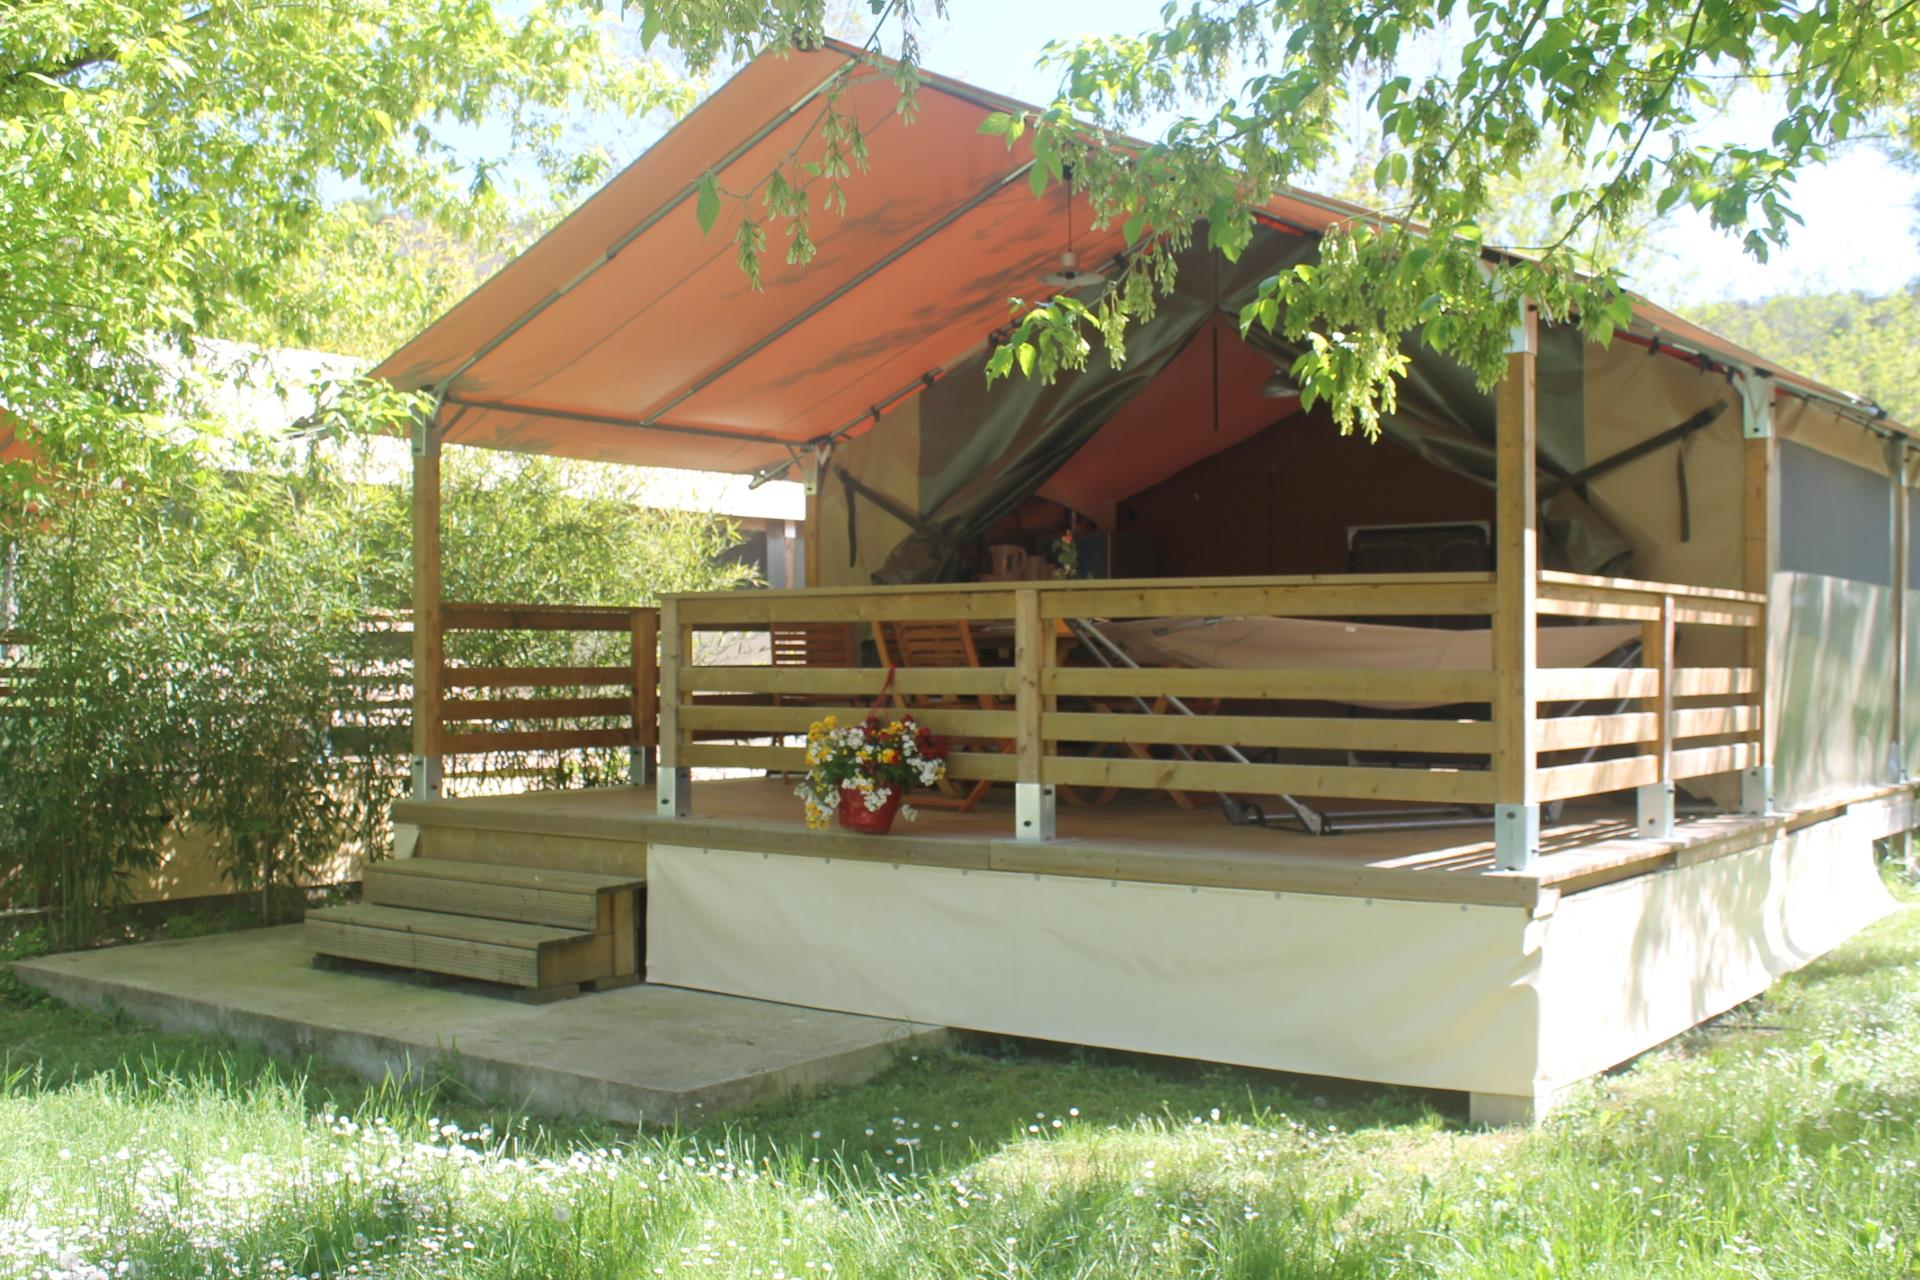 Accommodation - Freeflower Confort+ 40M² Without Toilet Blocks - Flower CAMPING SAINT AMAND